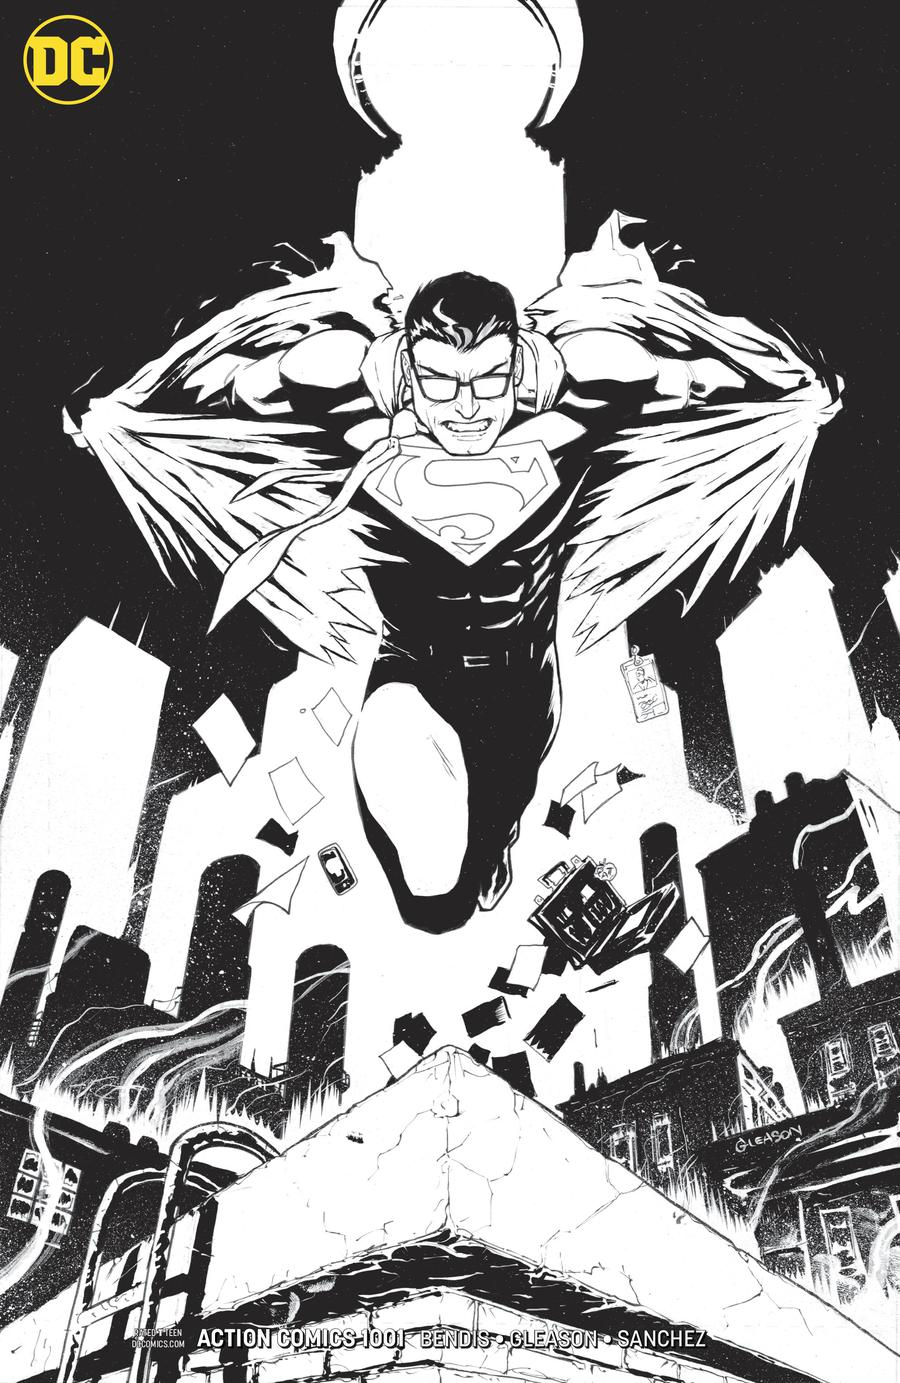 Action Comics Vol 2 #1001 Cover D Incentive Patrick Gleason Inks Only Cover